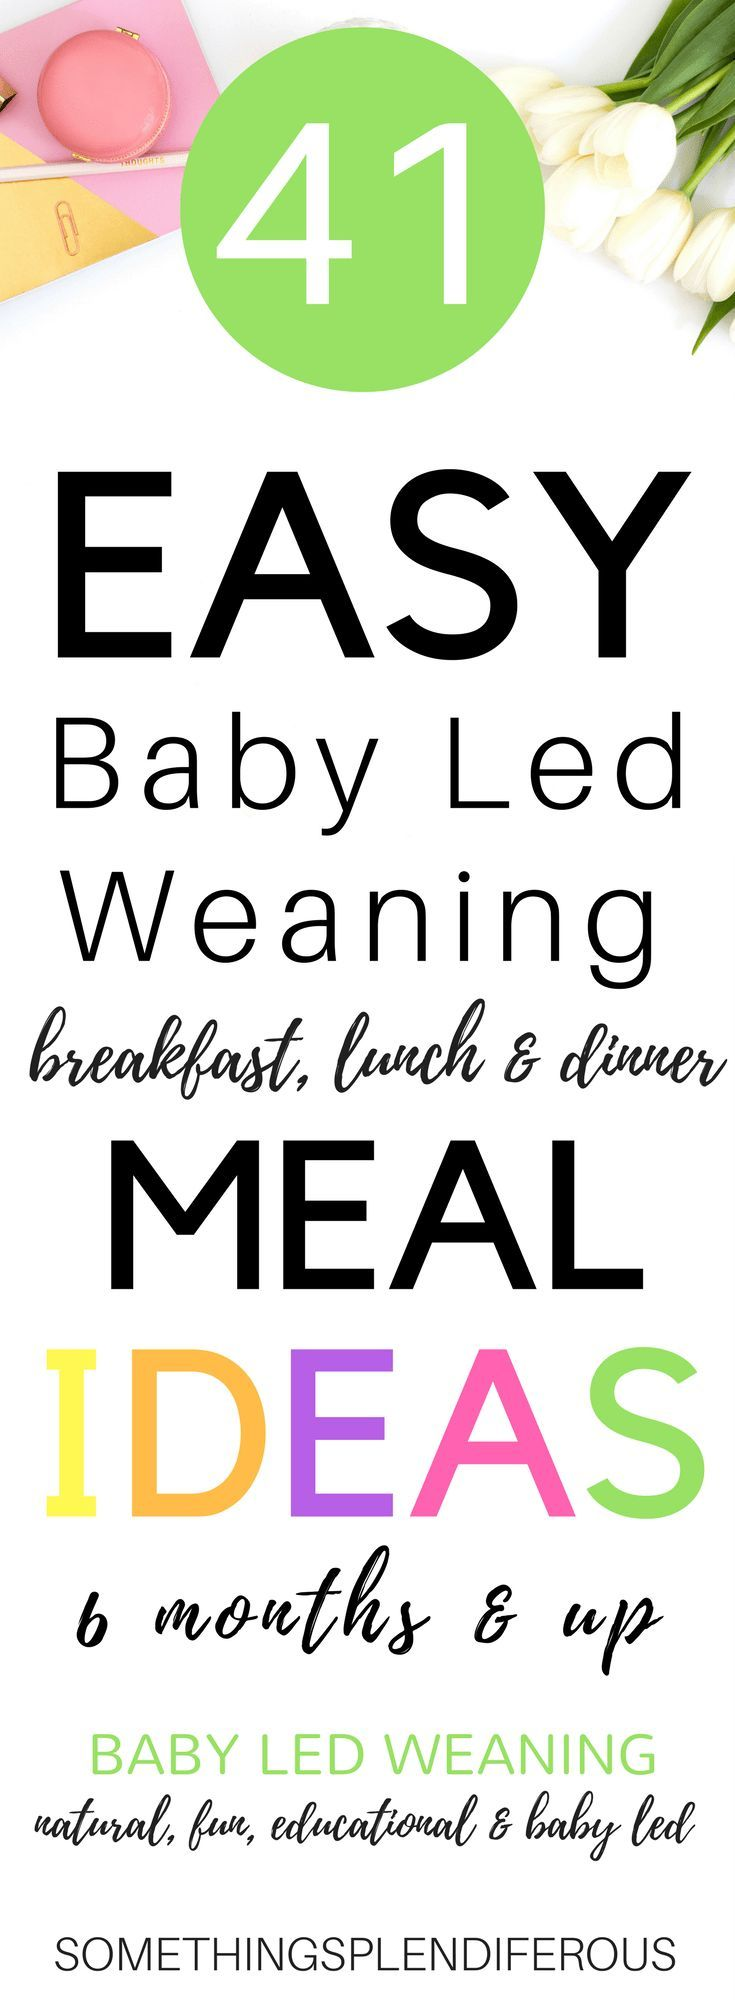 41 Easy Baby Led Weaning Breakfast, Lunch & Dinner Ideas 6 mos. & up+